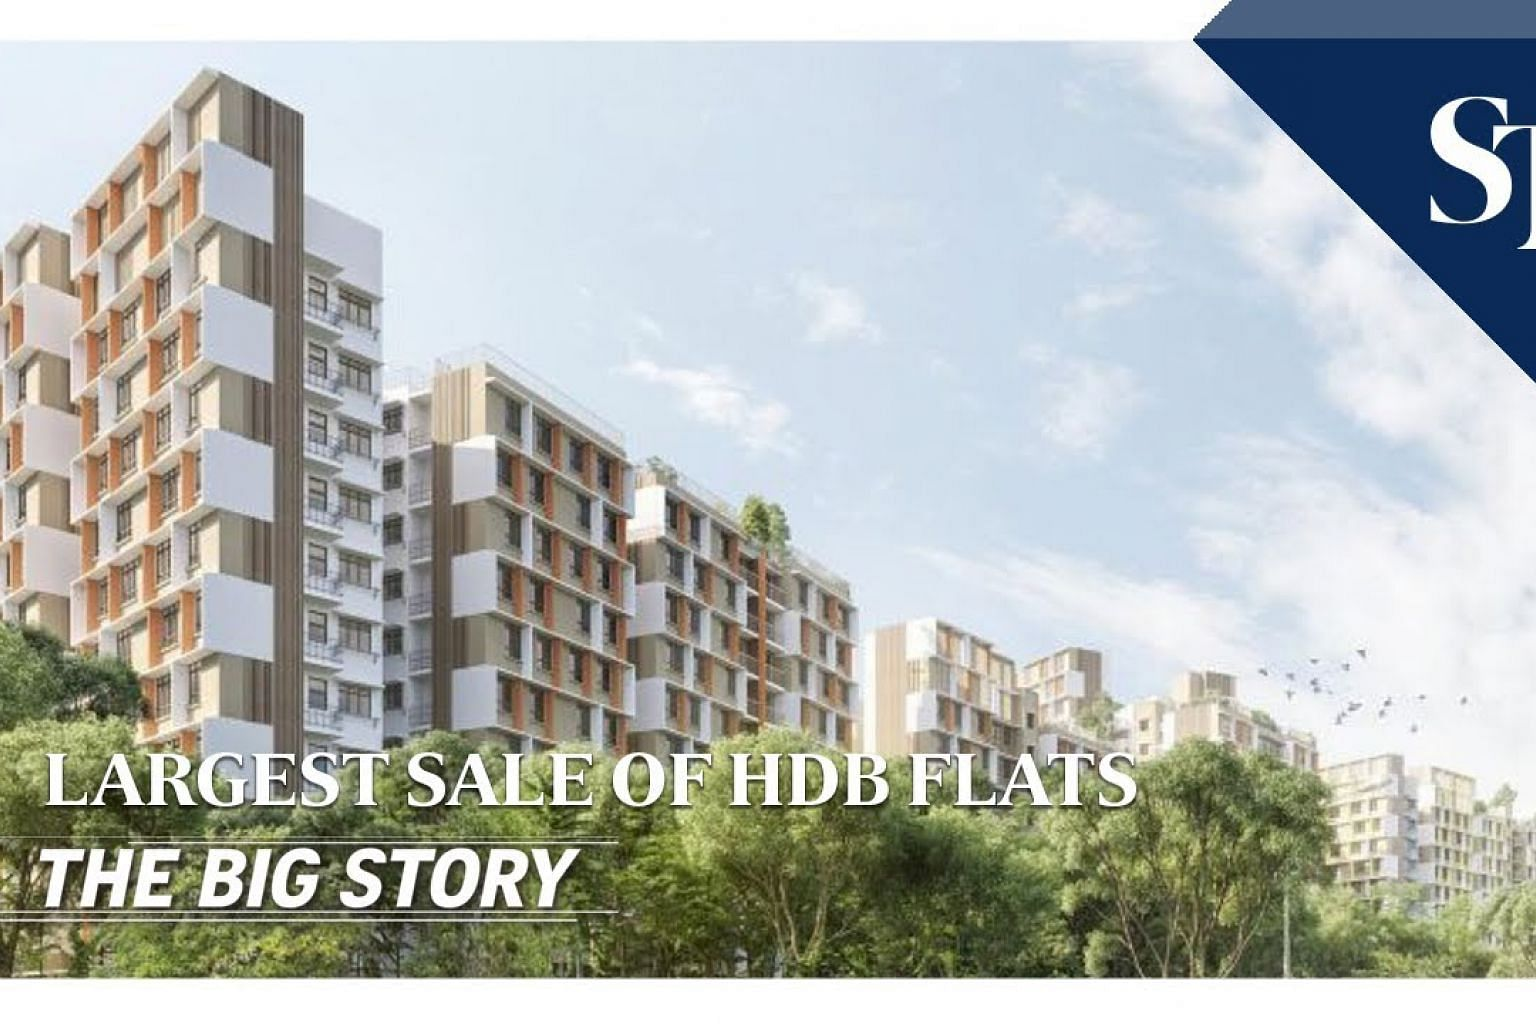 THE BIG STORY: Largest sale of HDB flats | The Straits Times